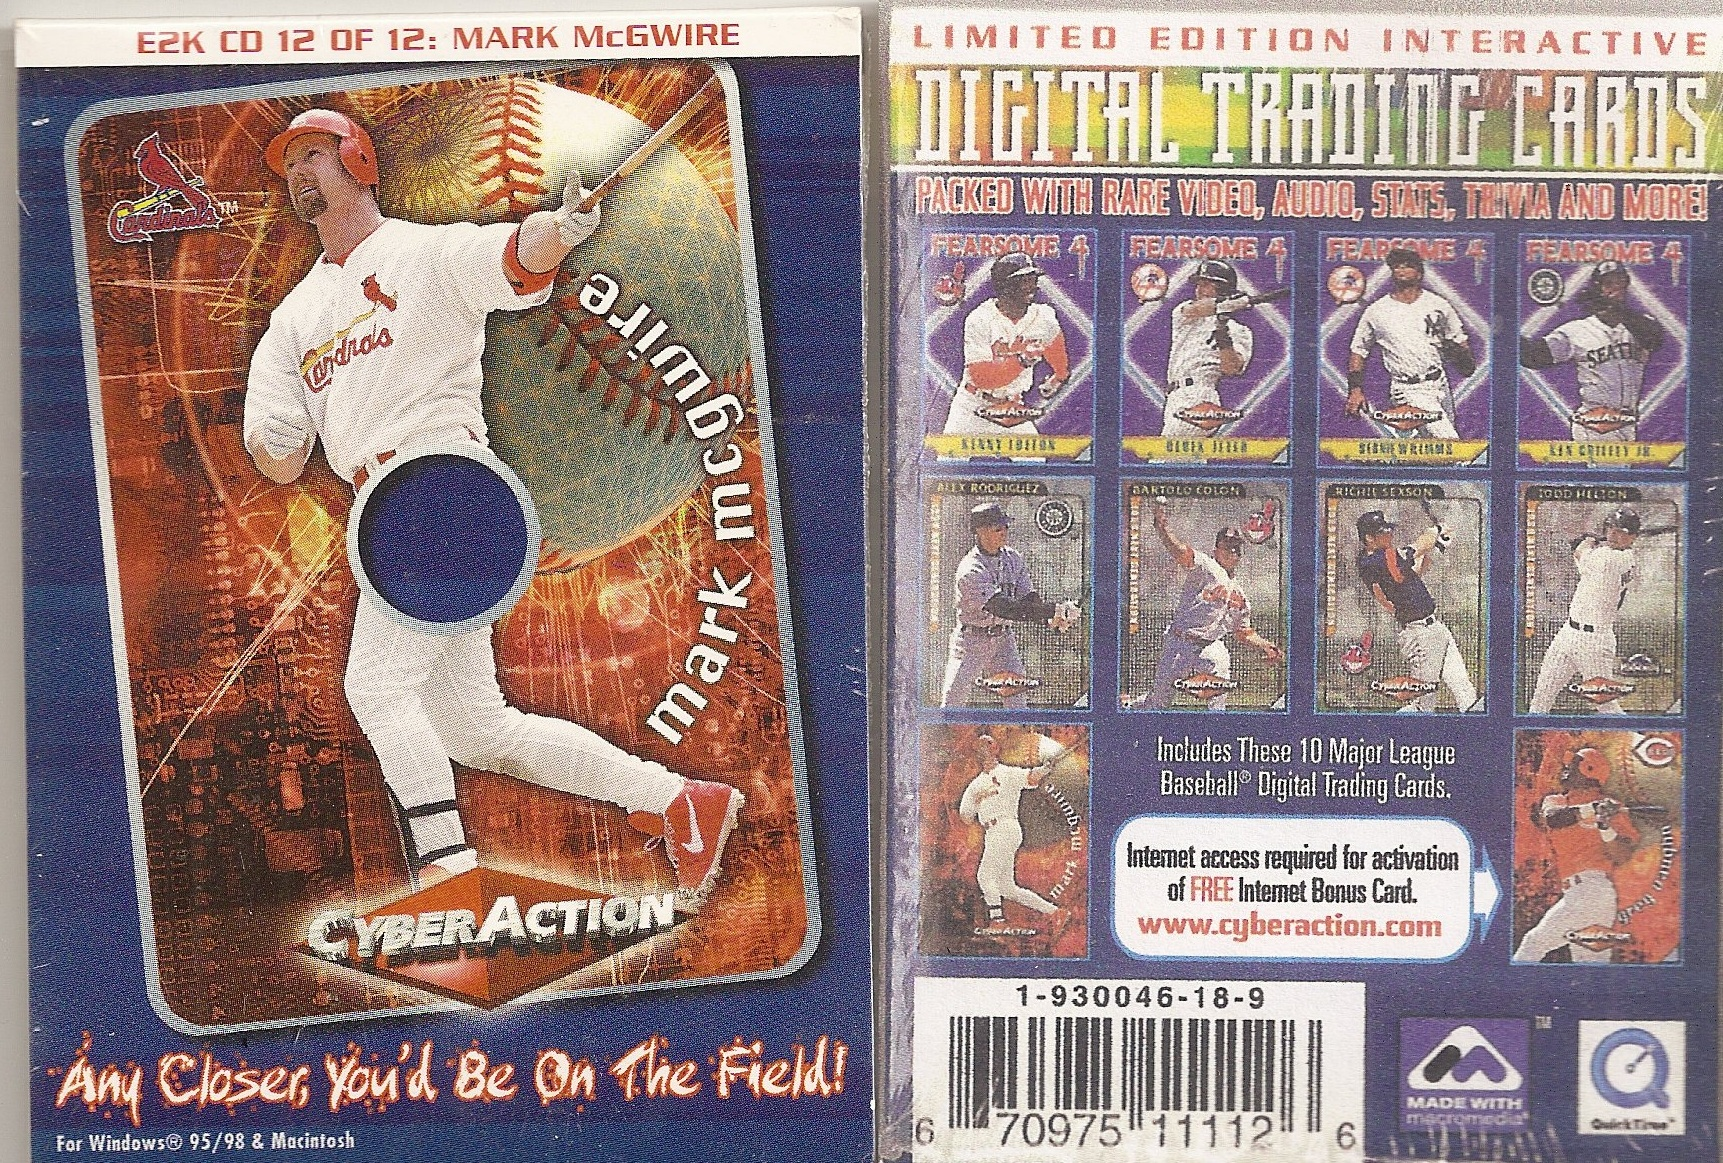 2000 Cyber Action Mini CD